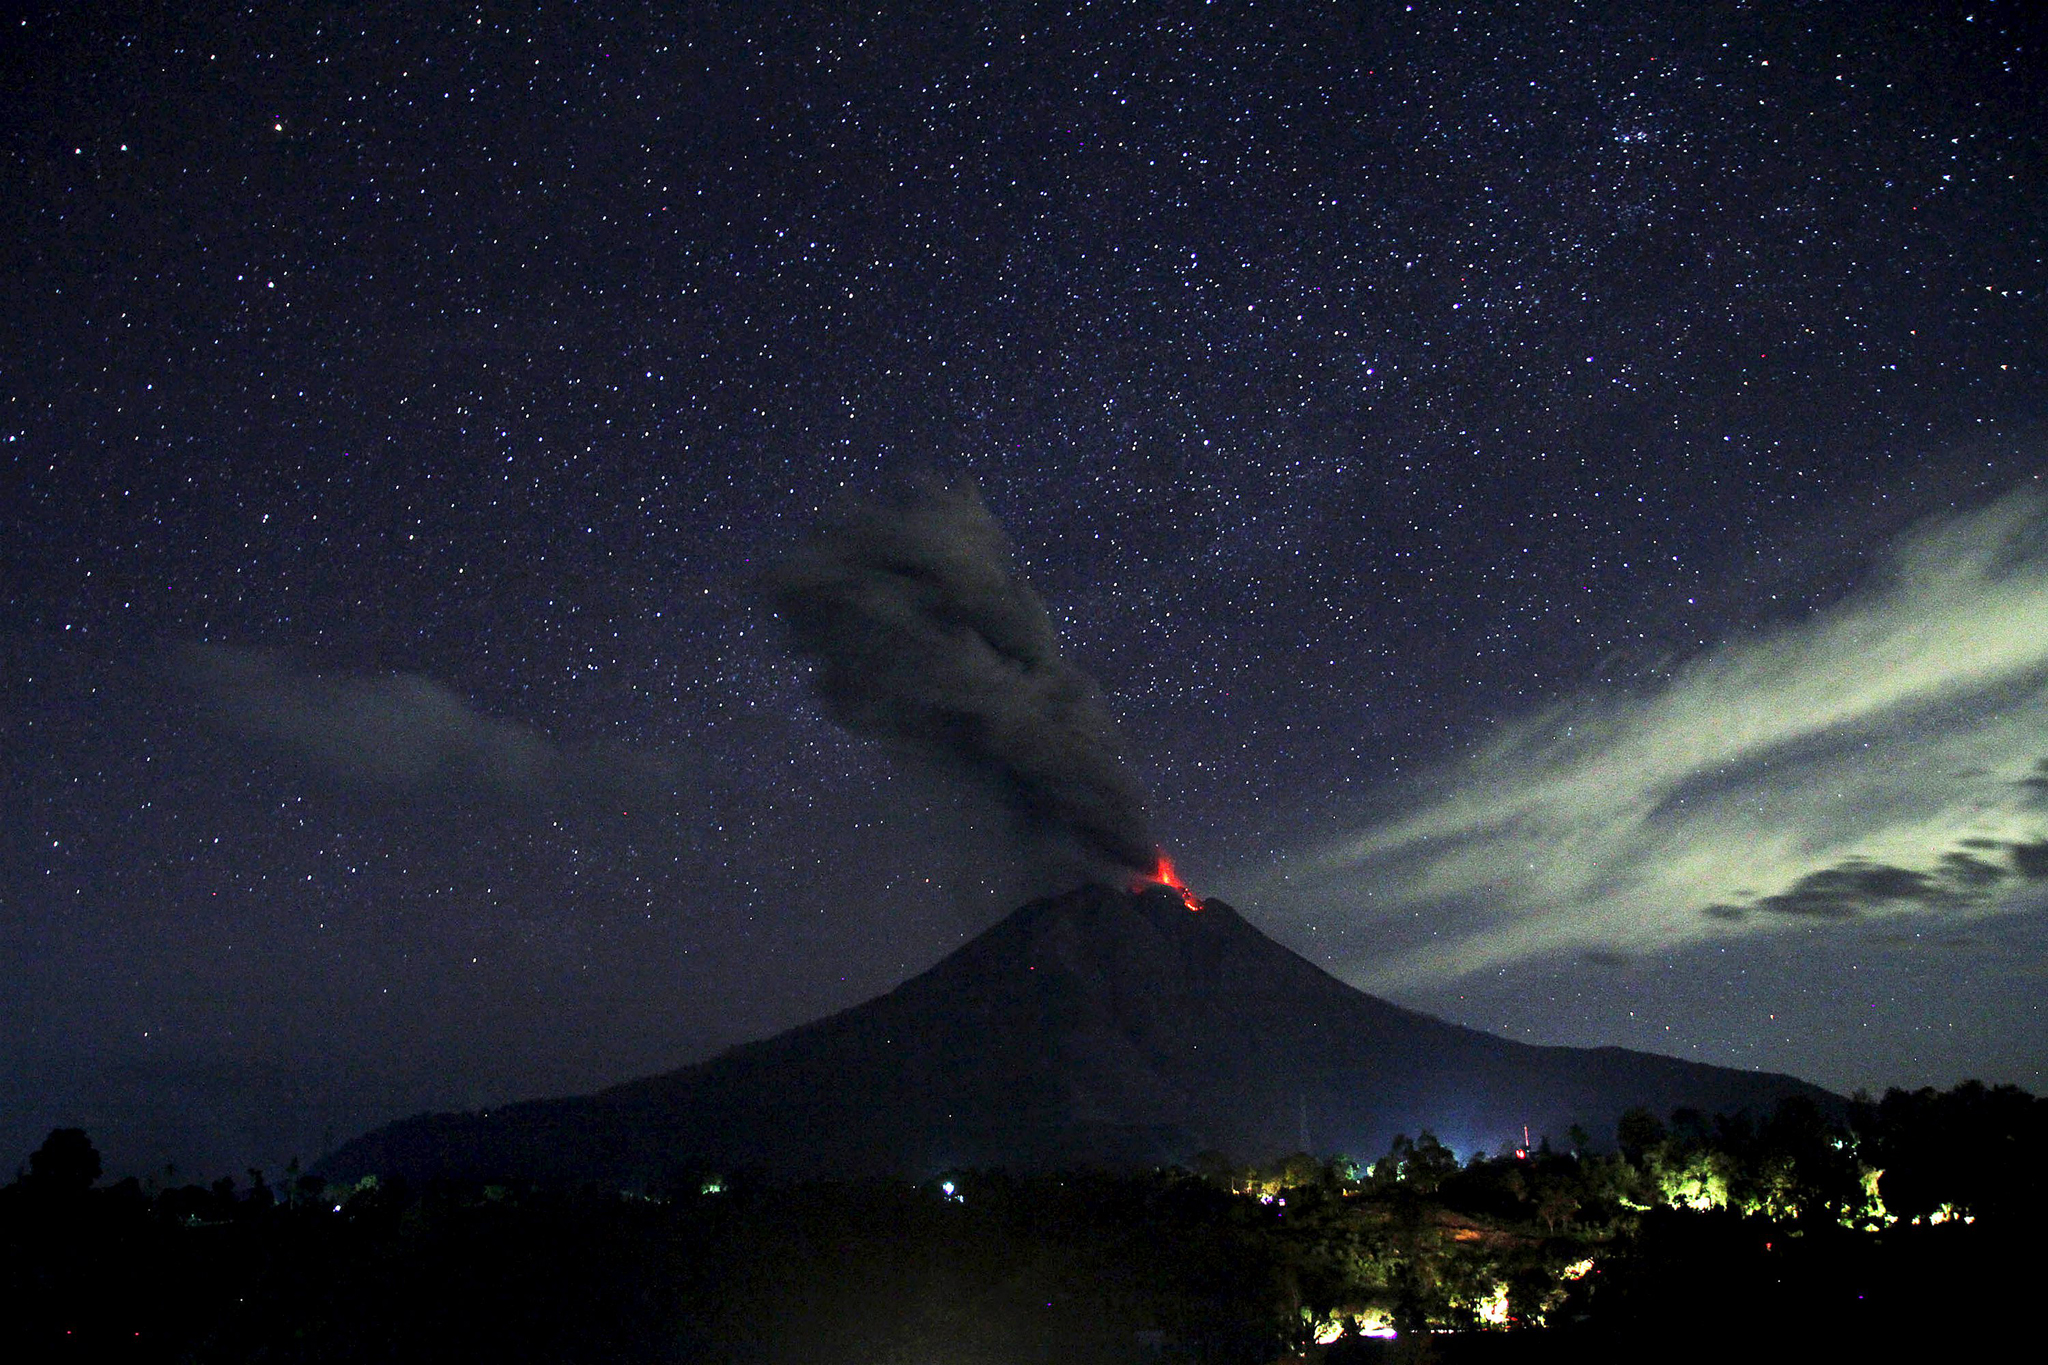 Indonesia's Mount Sinabung volcano spews lava and ash